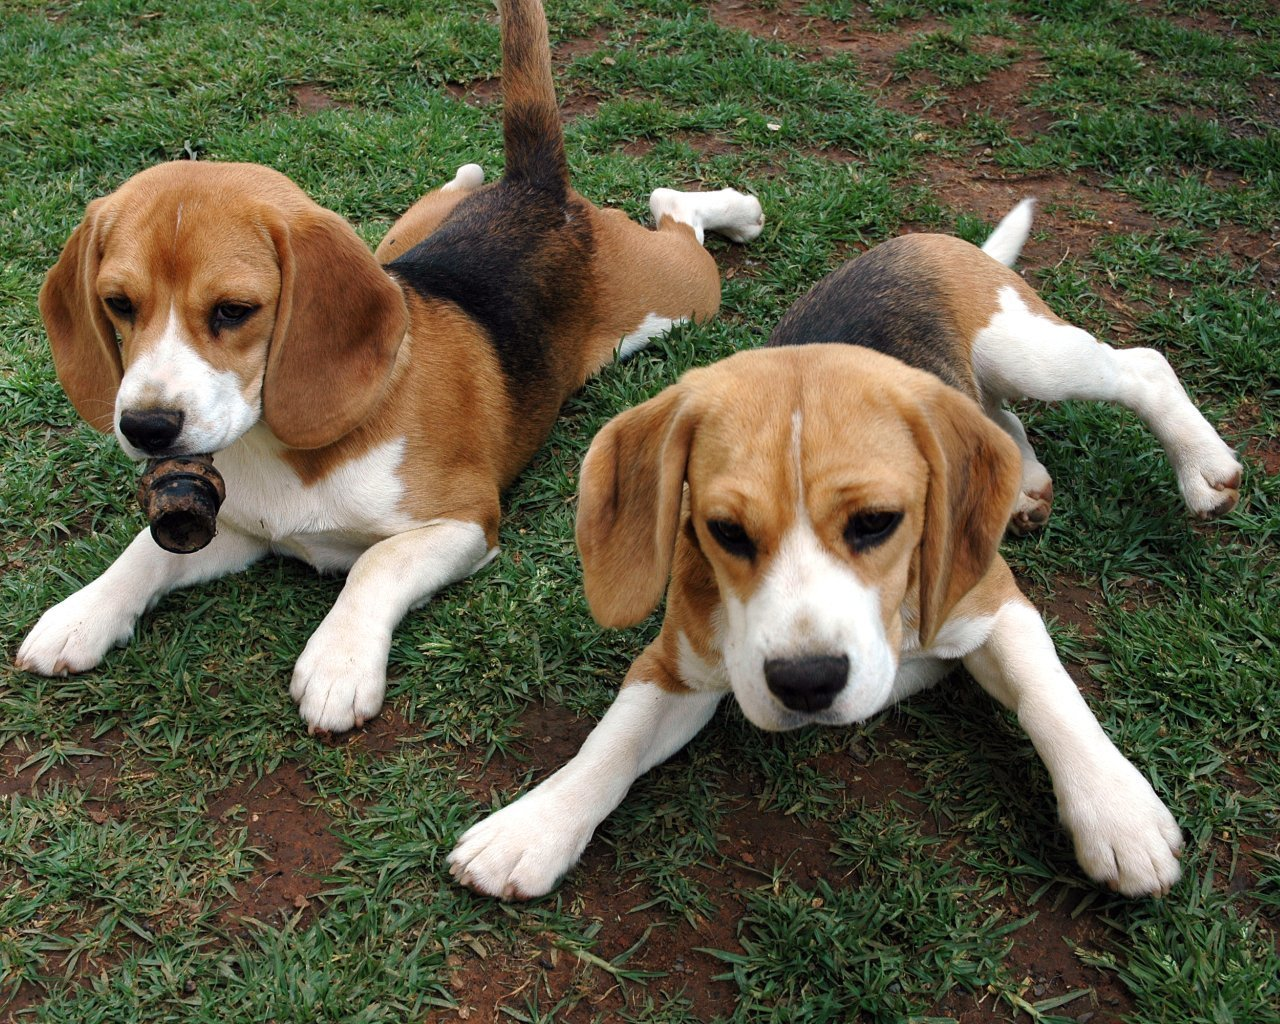 Beagle - Puppies, Pictures, Facts, Diet, Habitat, Behavior, Breeding ...